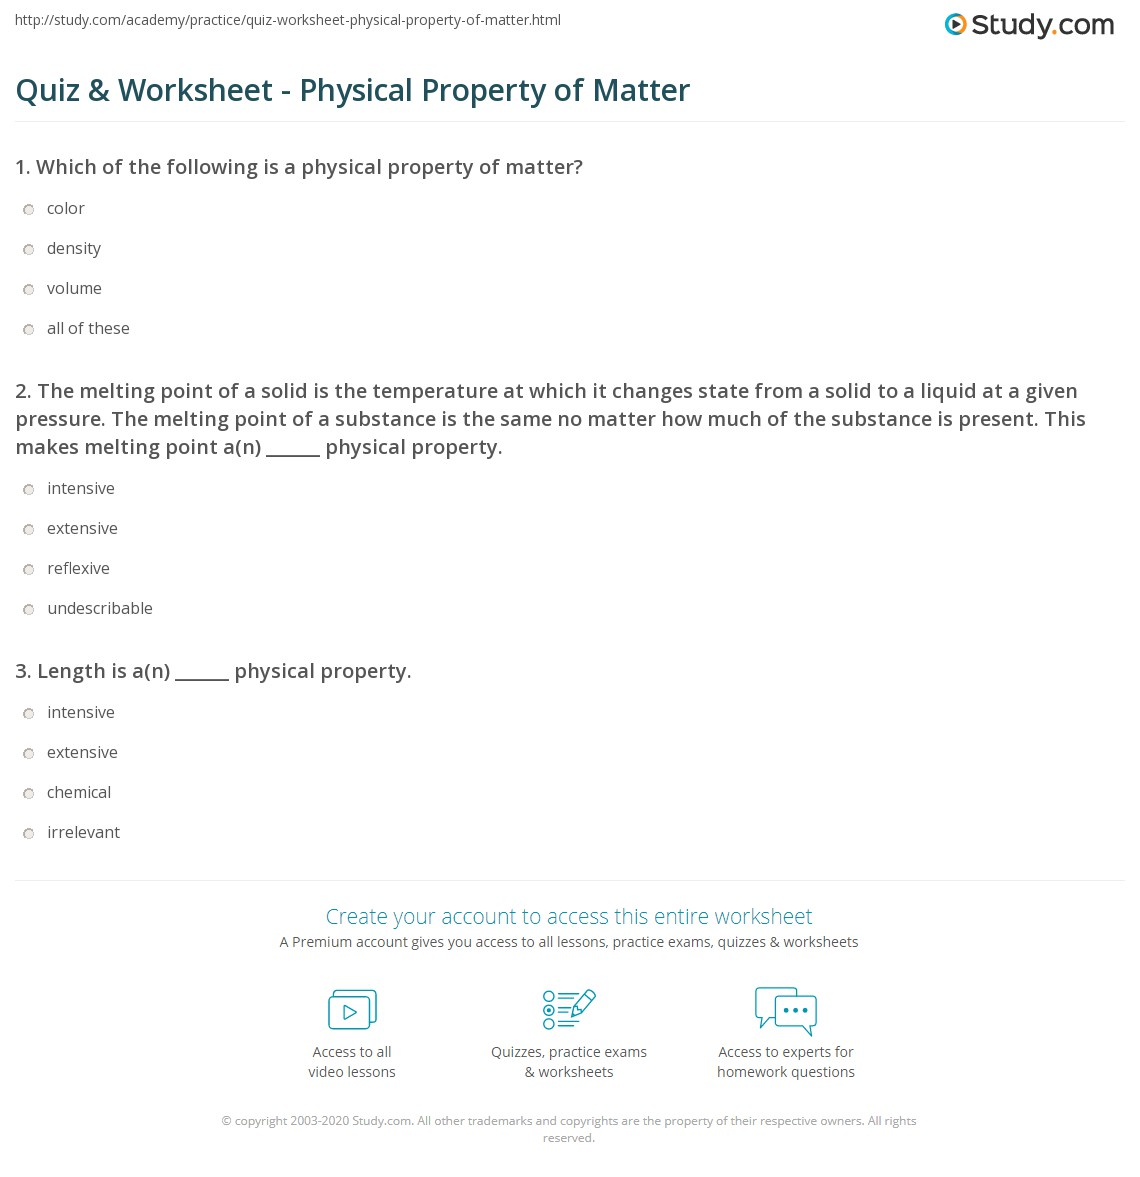 Worksheets Physical Properties Of Matter Worksheet quiz worksheet physical property of matter study com 1 the melting point a solid is temperature at which it changes state from to liquid given pressure point